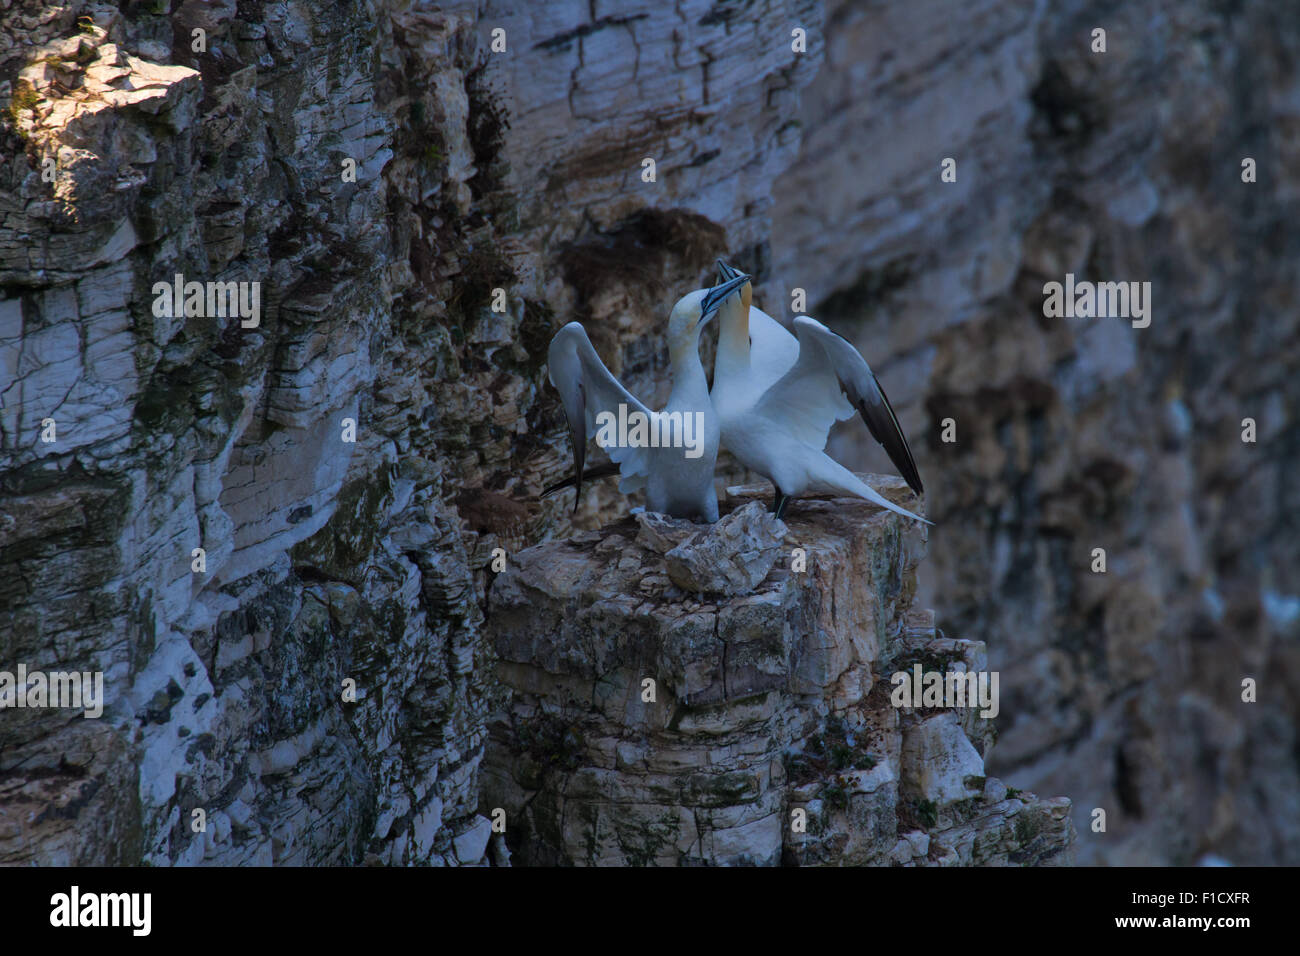 Gannet Greeting Ritual end phase where beaks cross - Stock Image